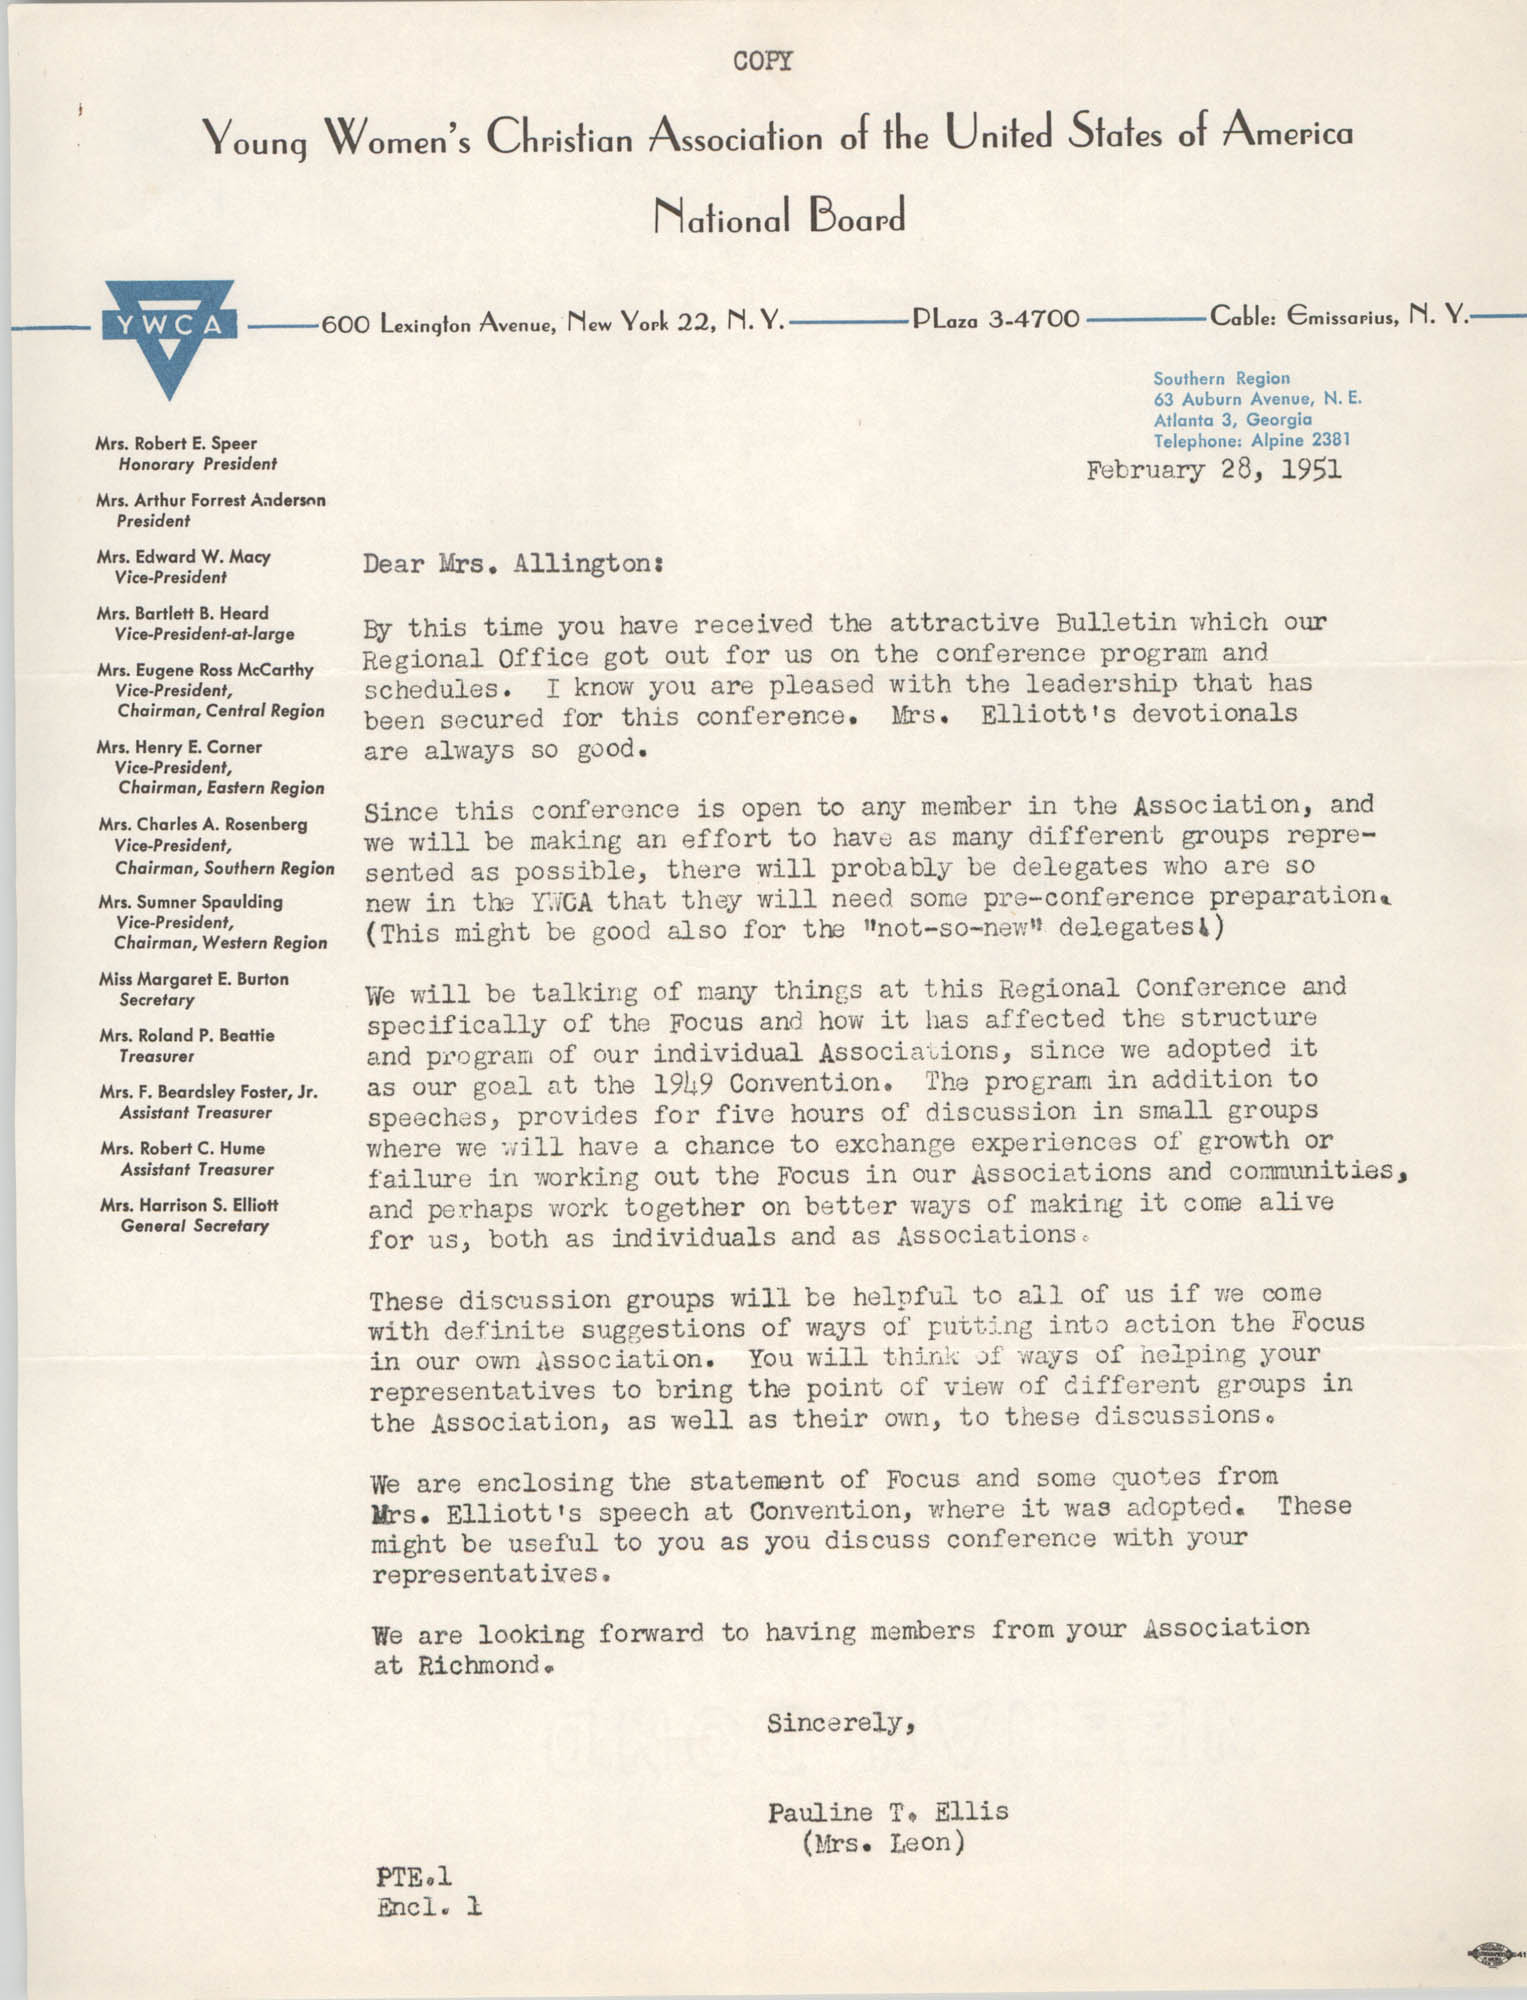 Letter from Pauline T. Ellis to